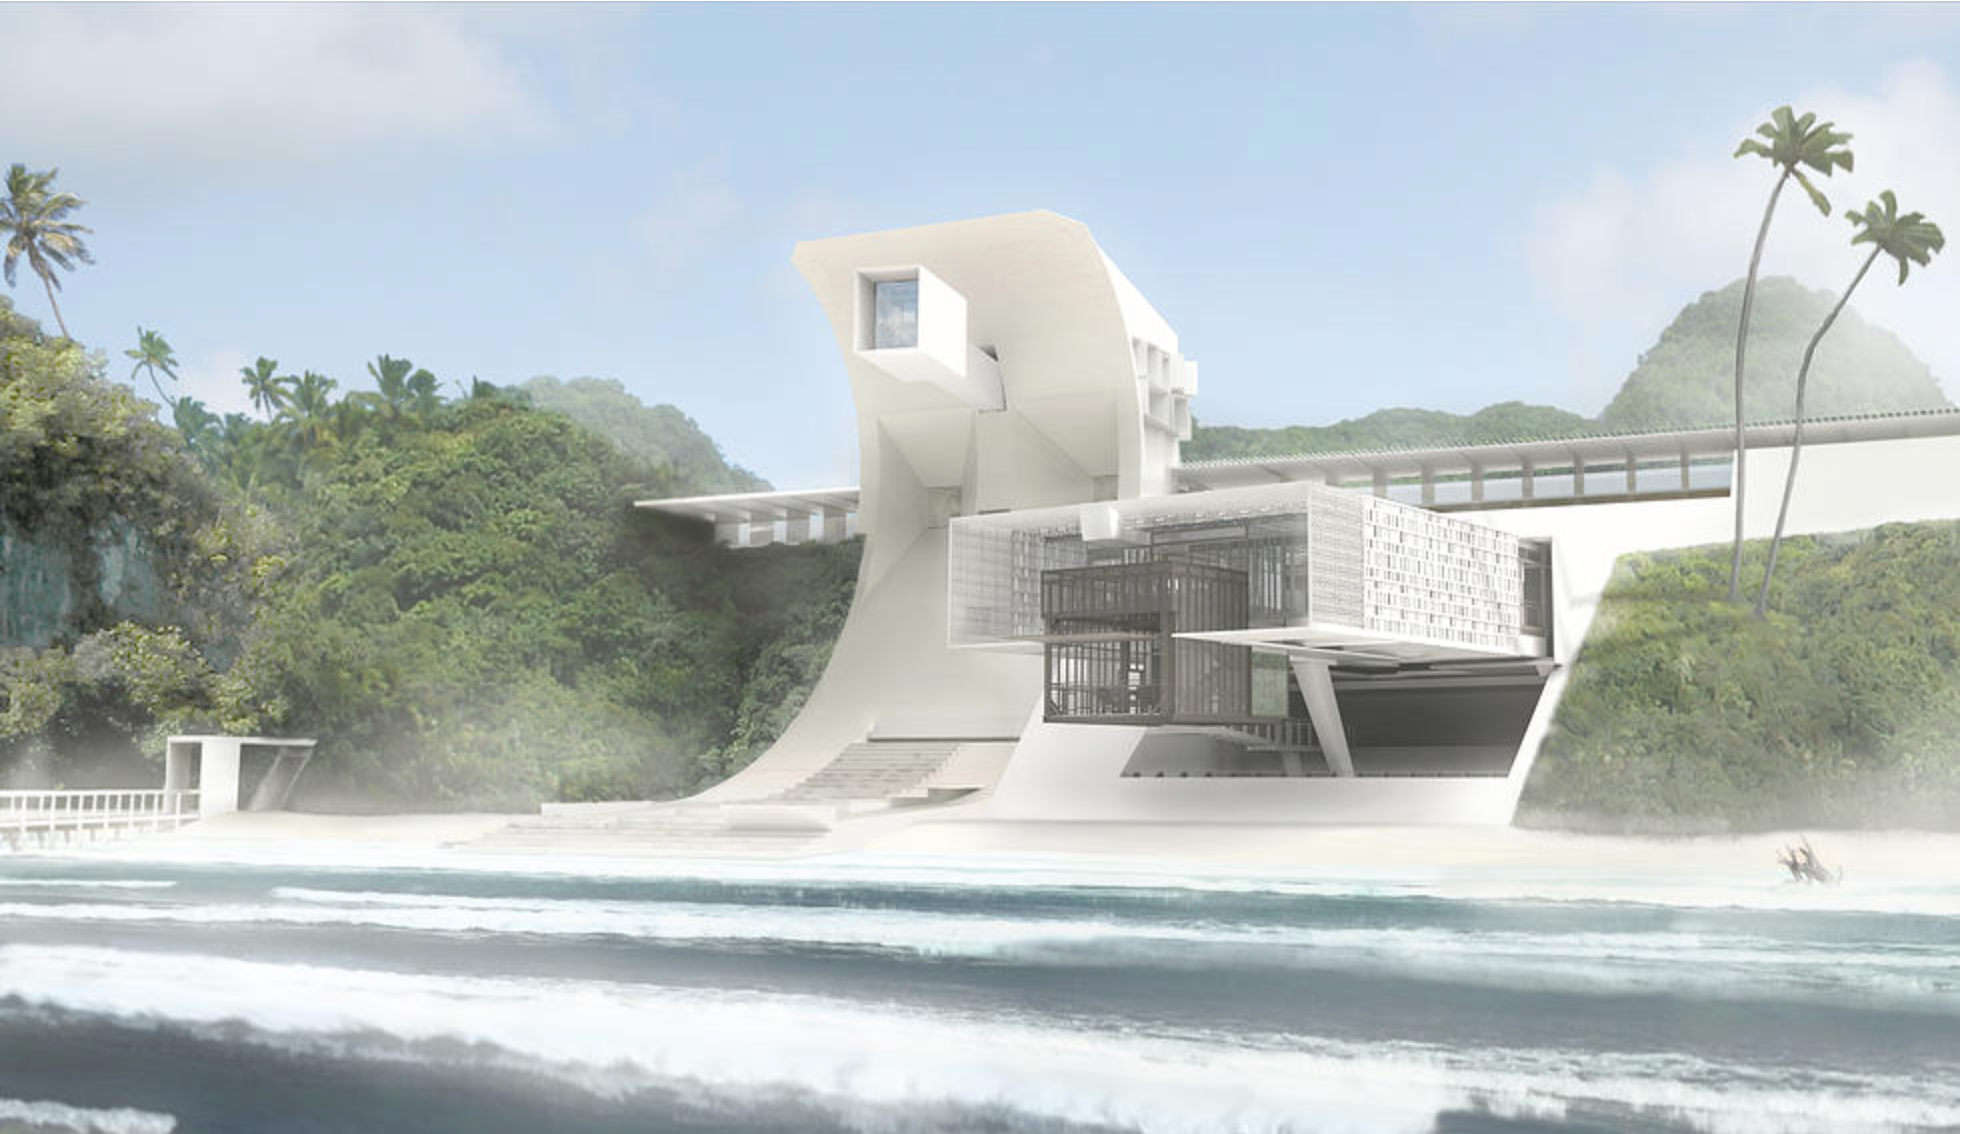 The futuristic structure's living area features a micro-climate evaporation pool to cool the home during the summer.